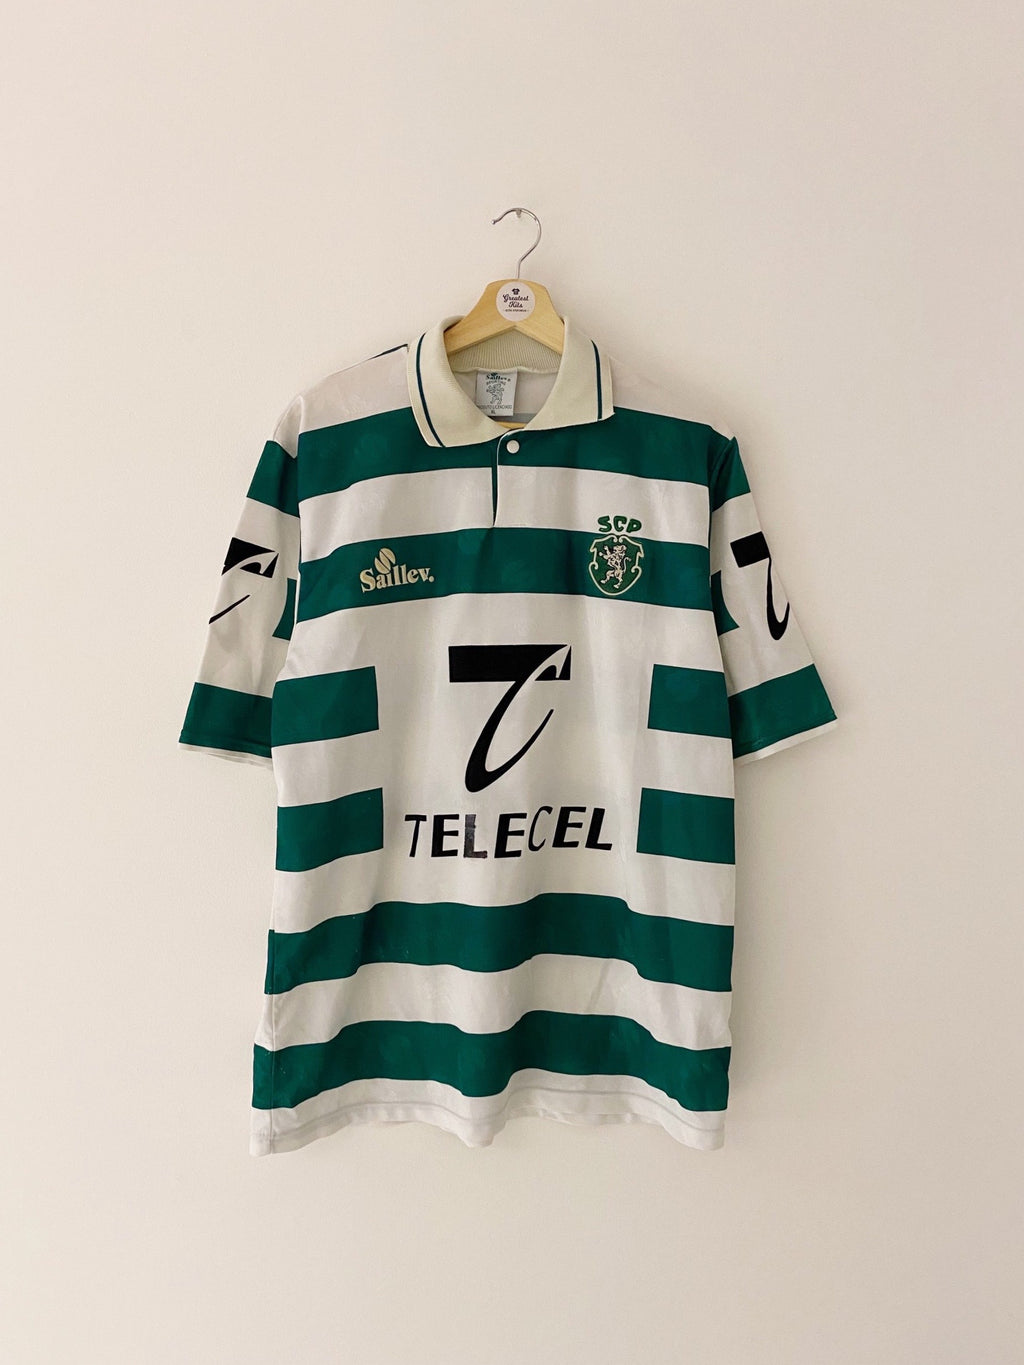 1996/97 Sporting Lisbon Home Shirt (XL) 6/10